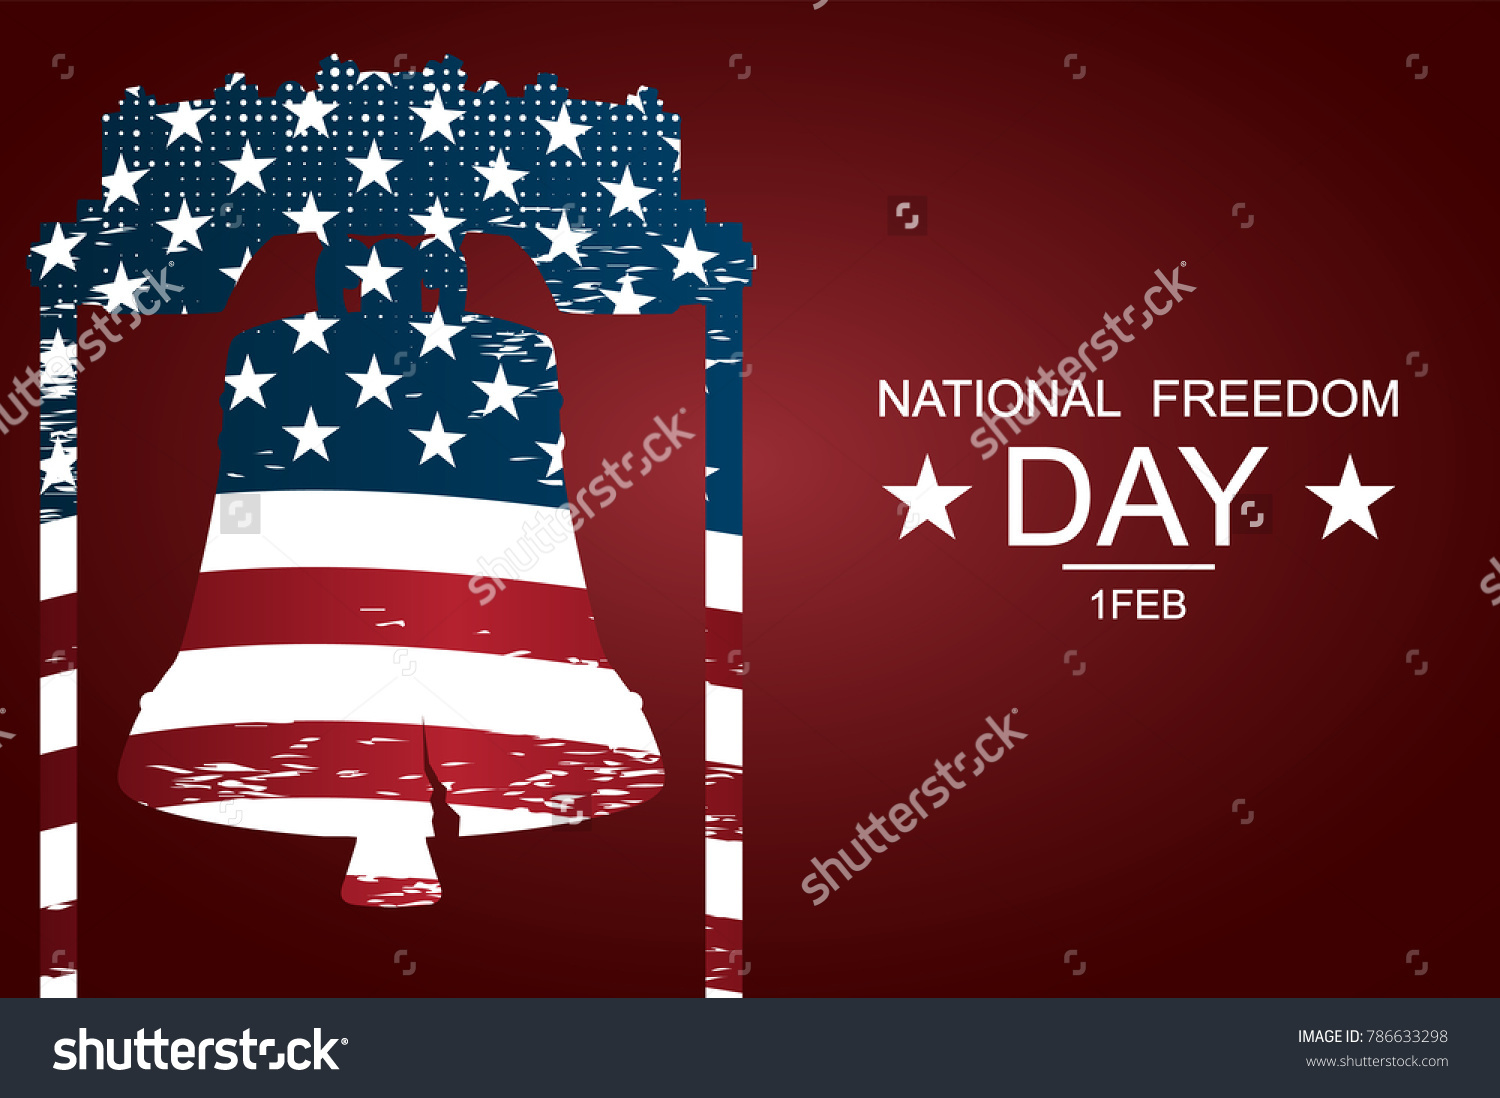 Liberty bell symbols freedom justice national stock vector the liberty bell as symbols of freedom and justice for national freedom day poster or biocorpaavc Images